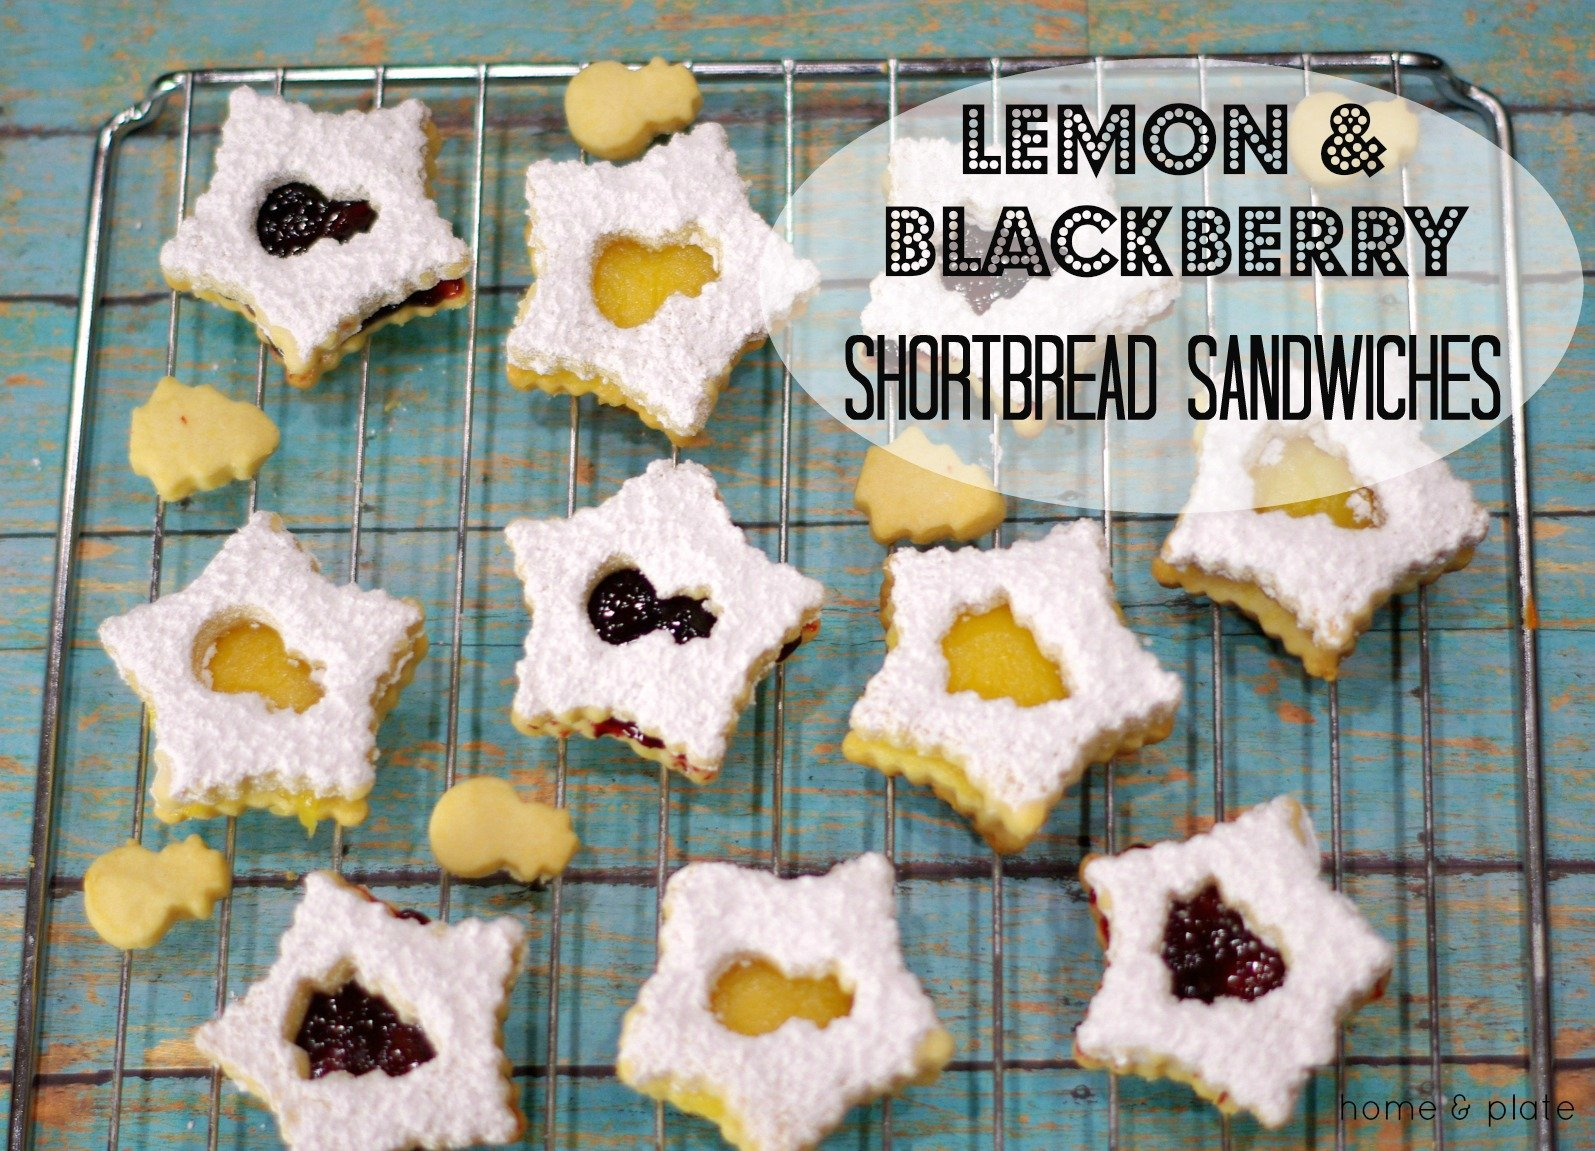 Lemon and Blackberry Shortbread Cookies | Lemon and blackberry shortbread cookies are tangy and sweet and are the perfect sandwich cookie to celebrate the holidays.